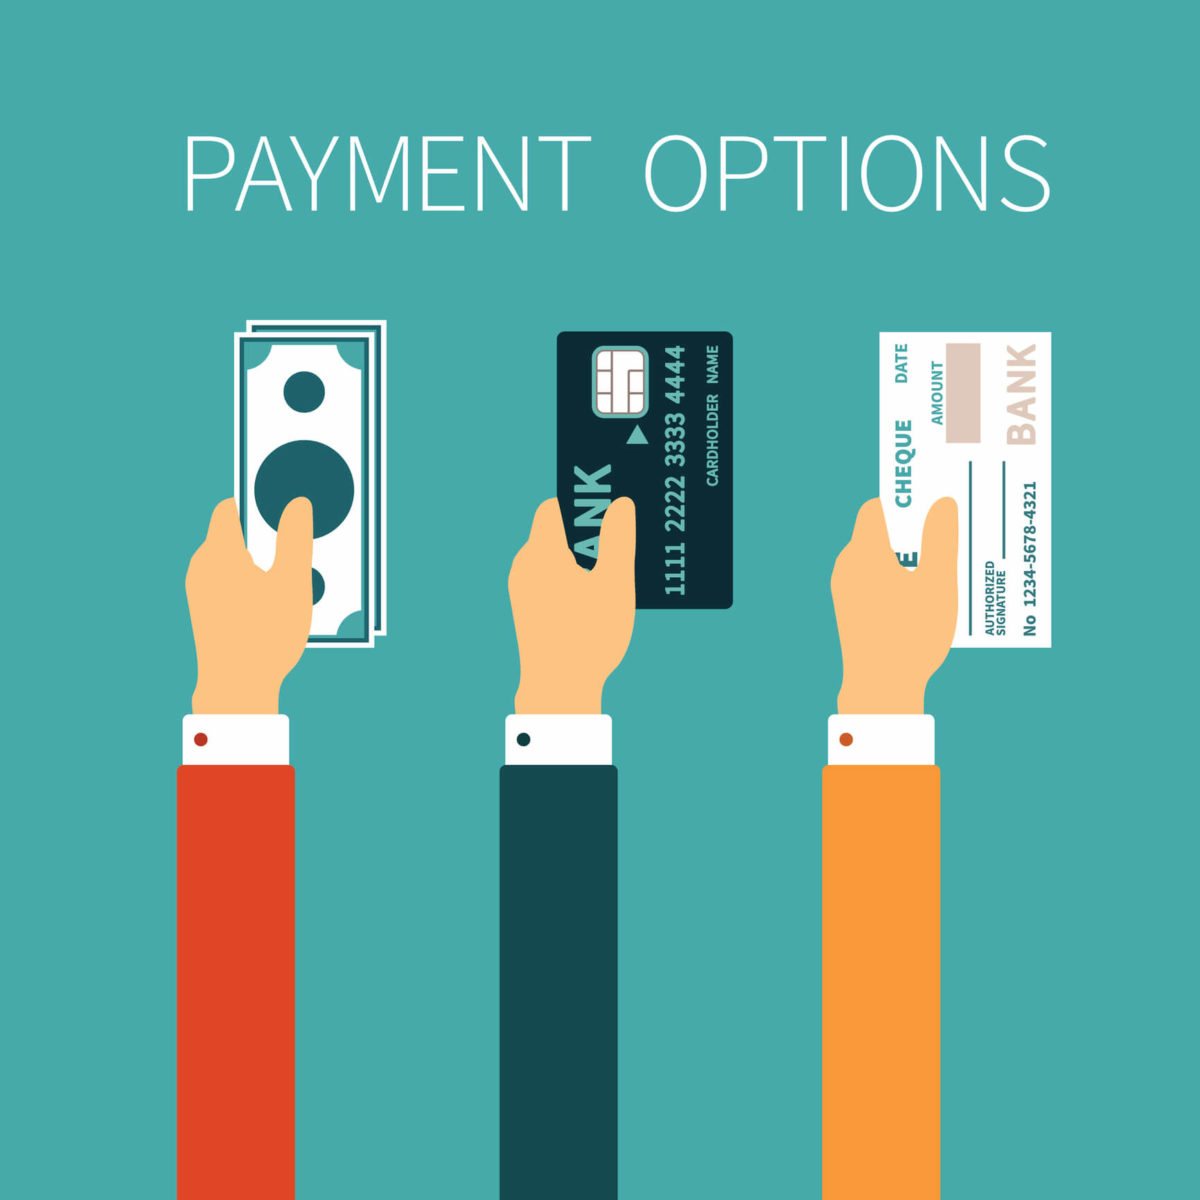 What's your preferred payment method?